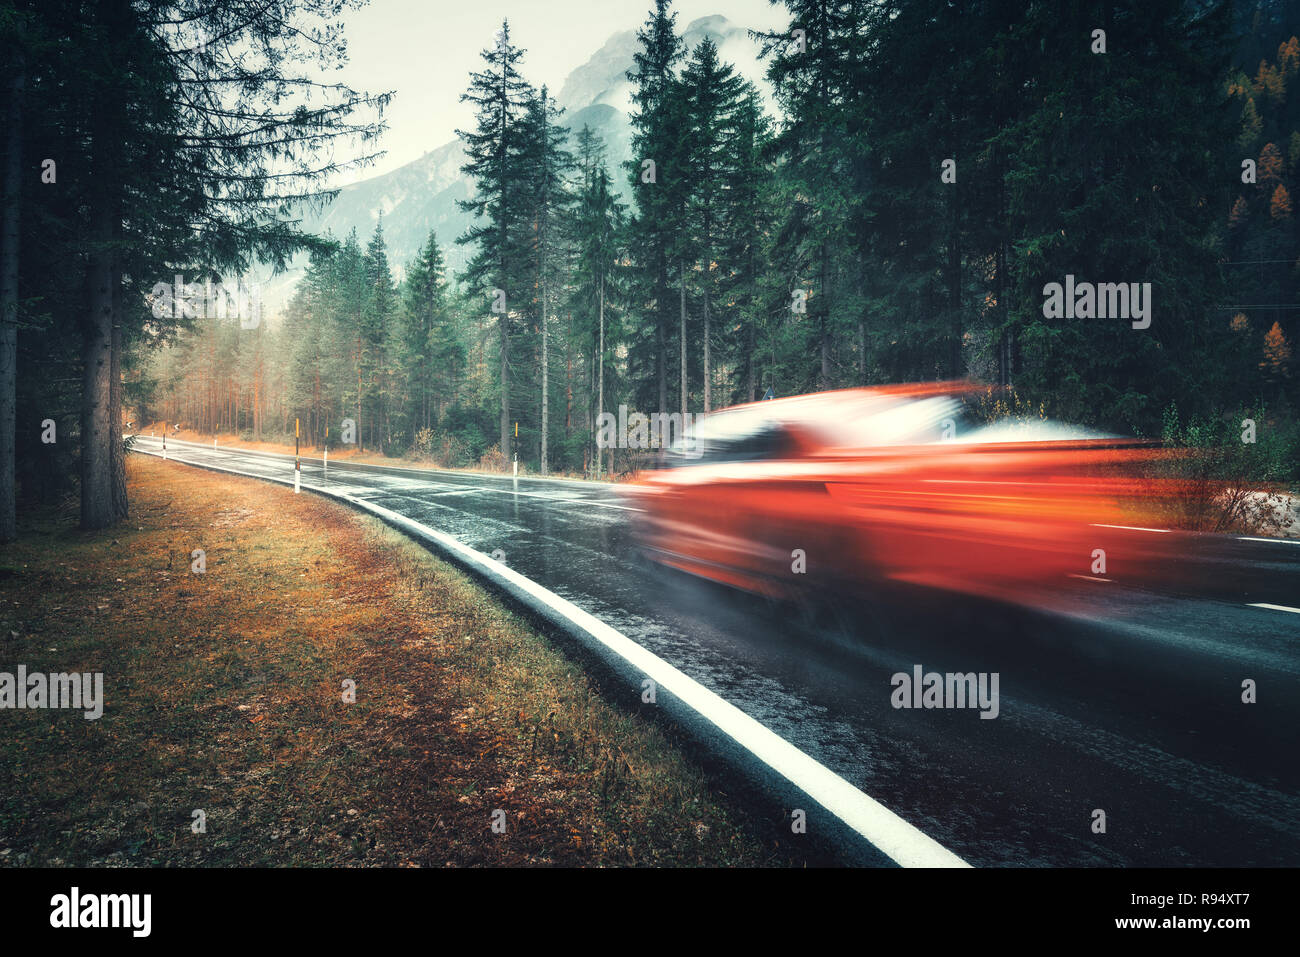 Blurred red car in motion on the road in autumn forest in